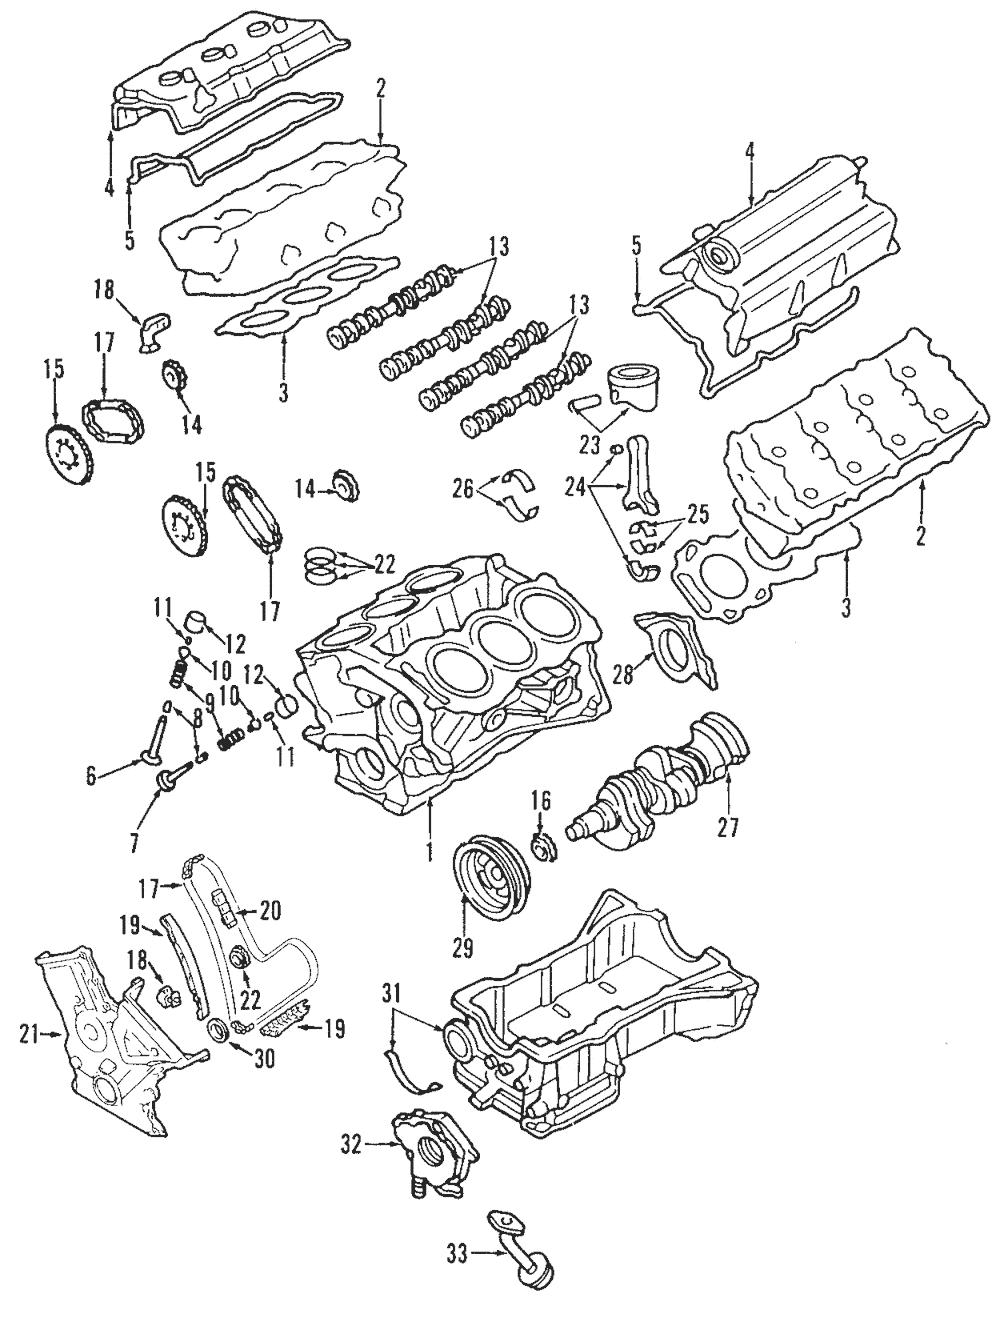 Genuine timing chain 7t4z 6268 a